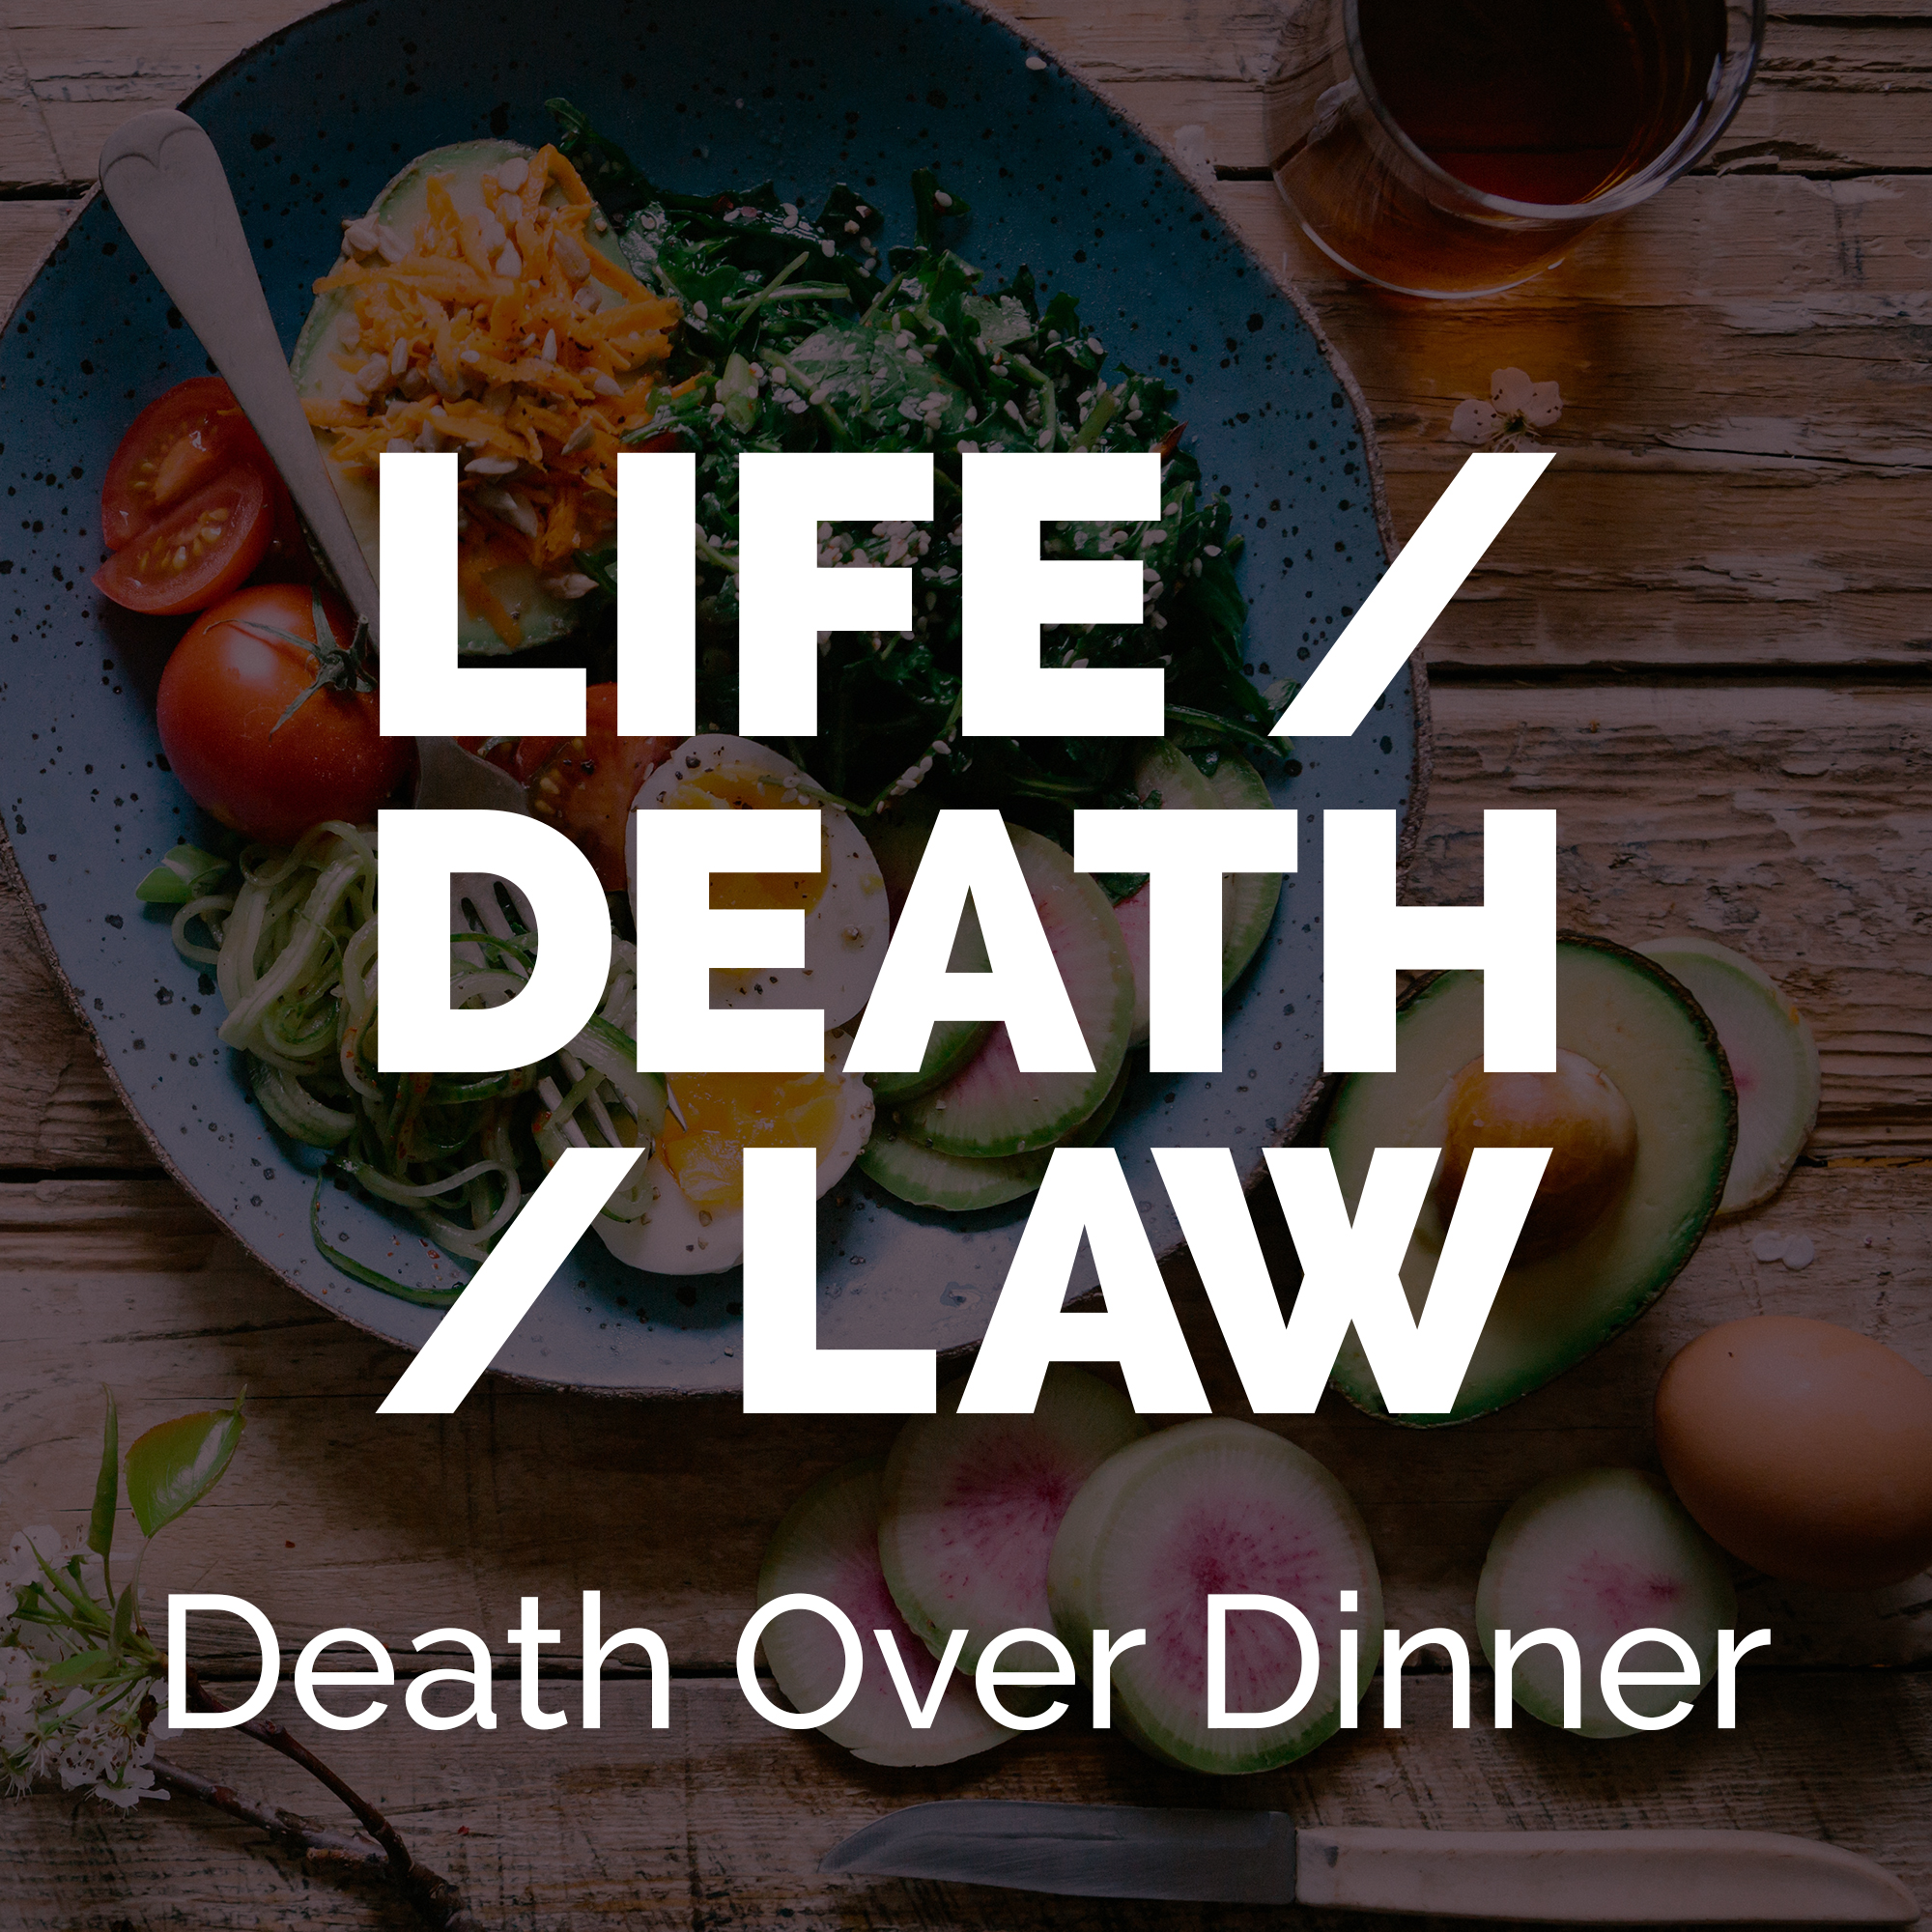 Michael Hebb: Death Over Dinner